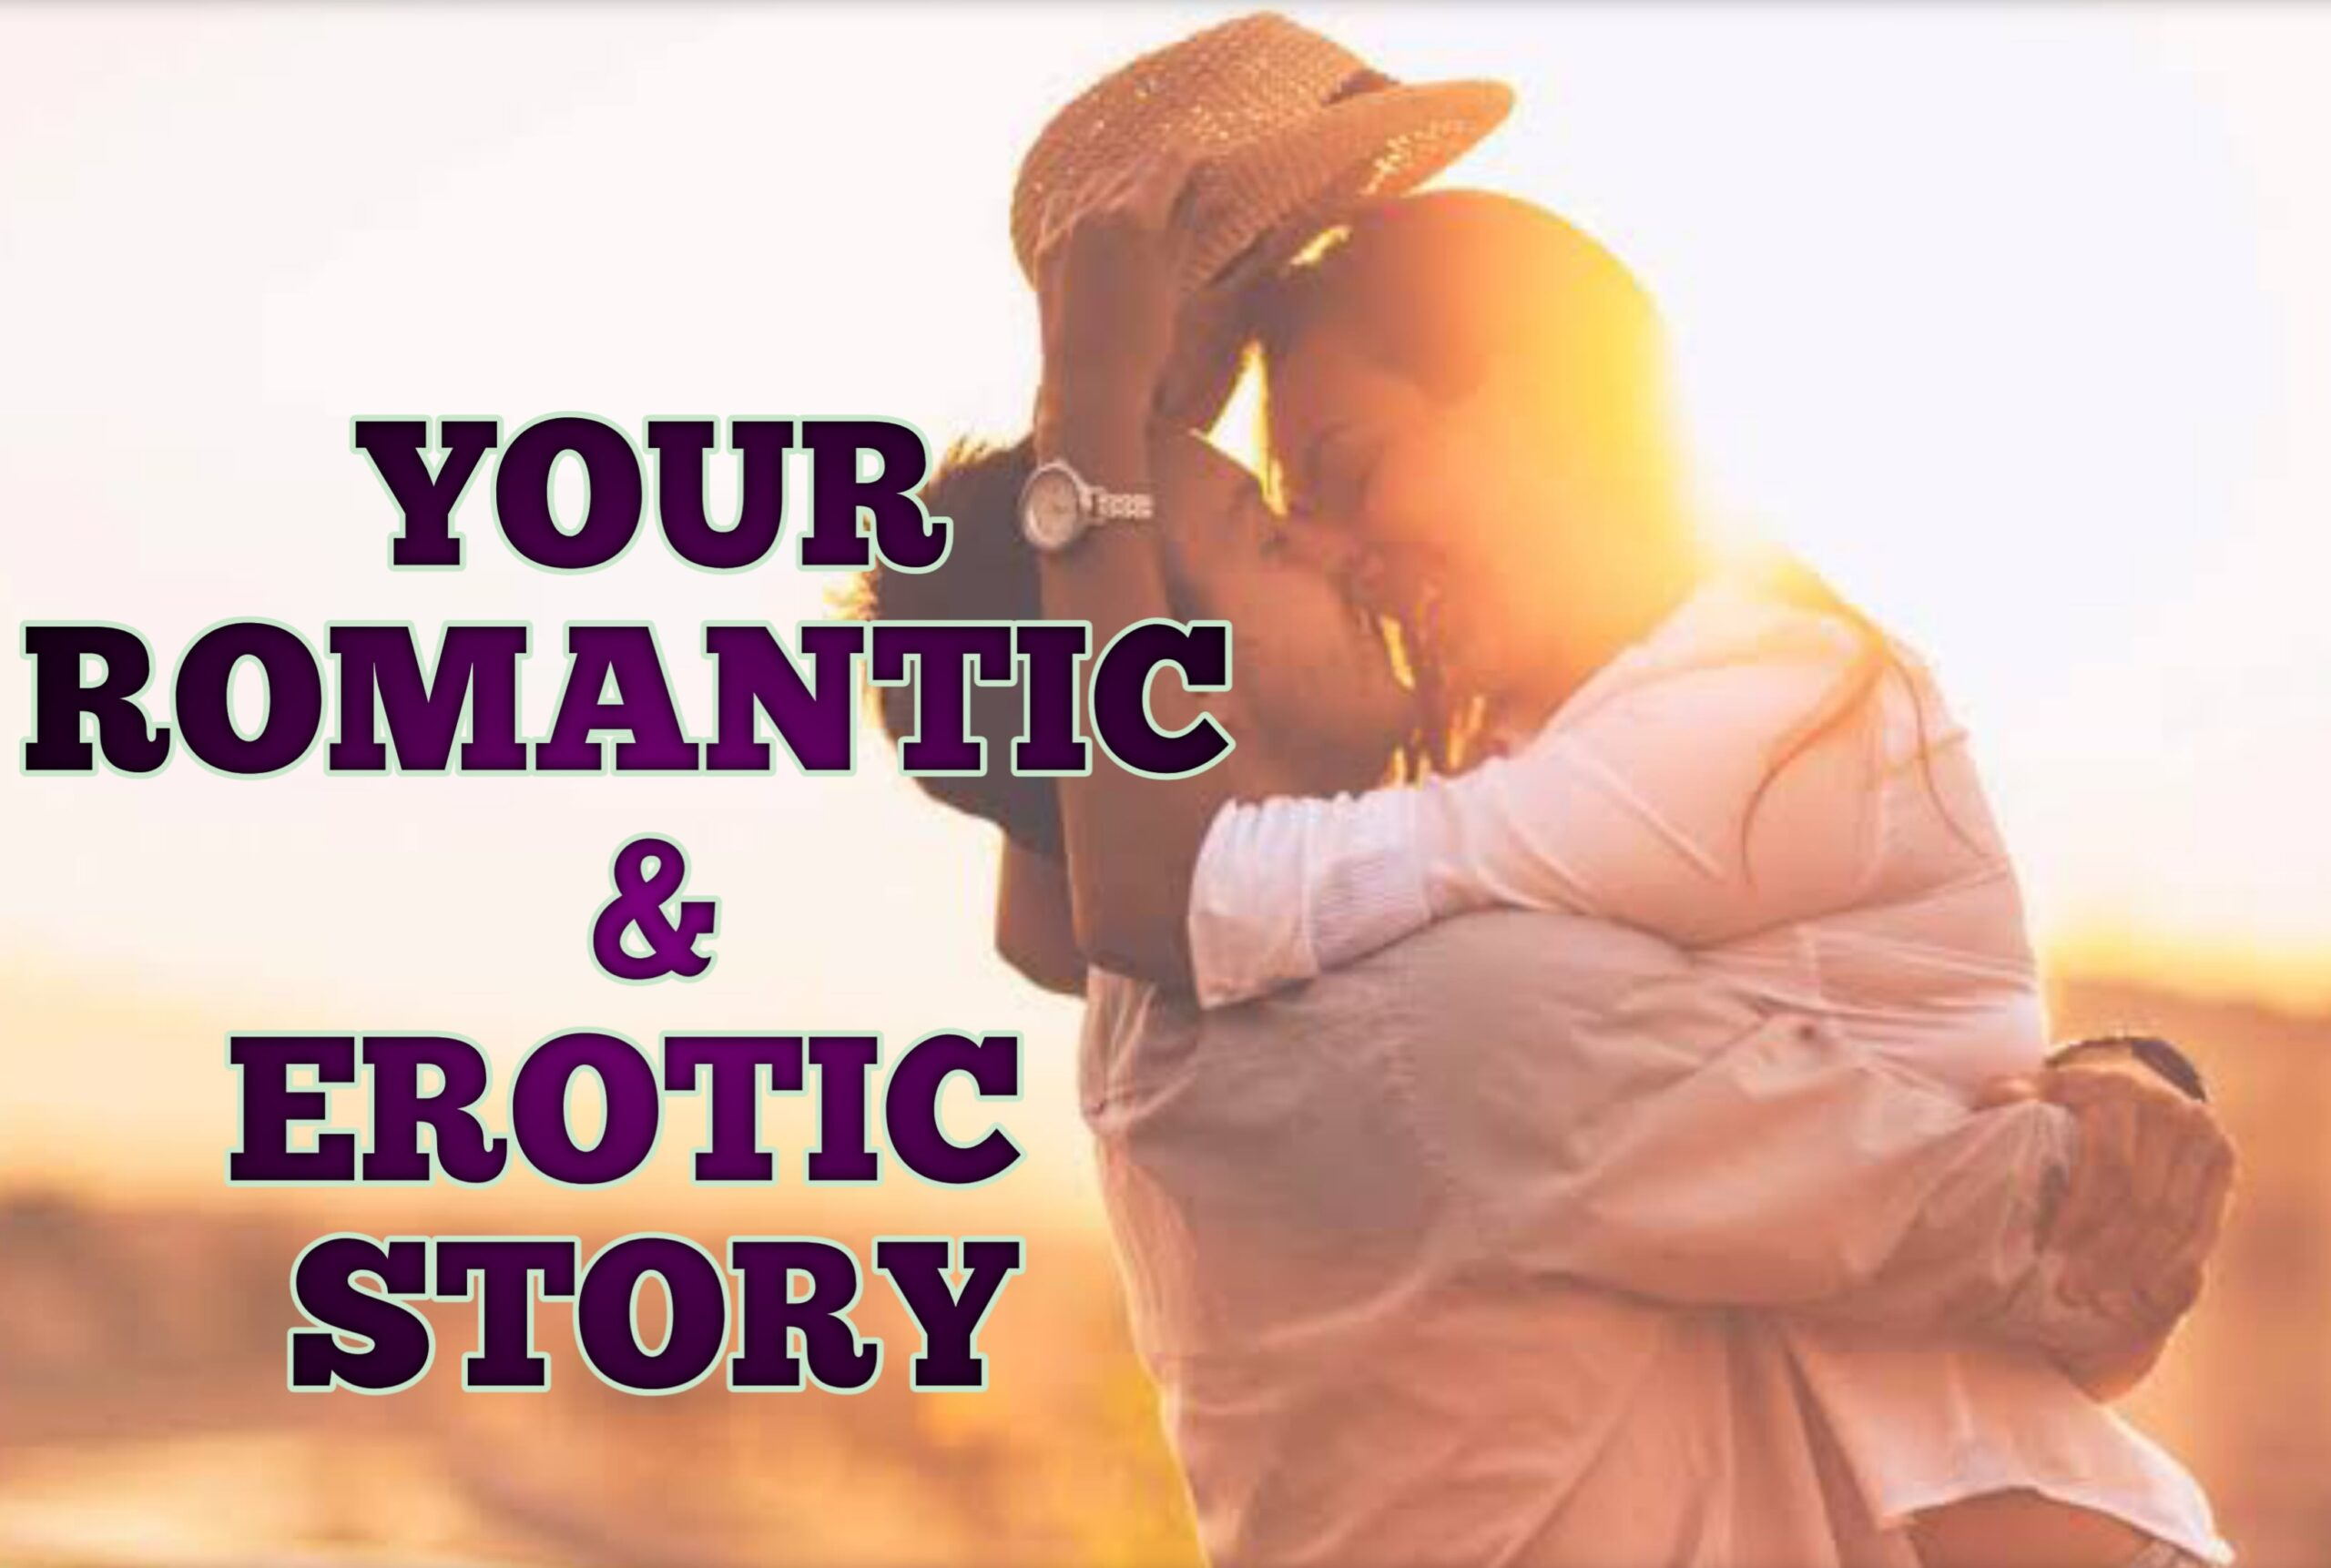 I will ghostwrite your romantic or erotic storry, FiverrBox